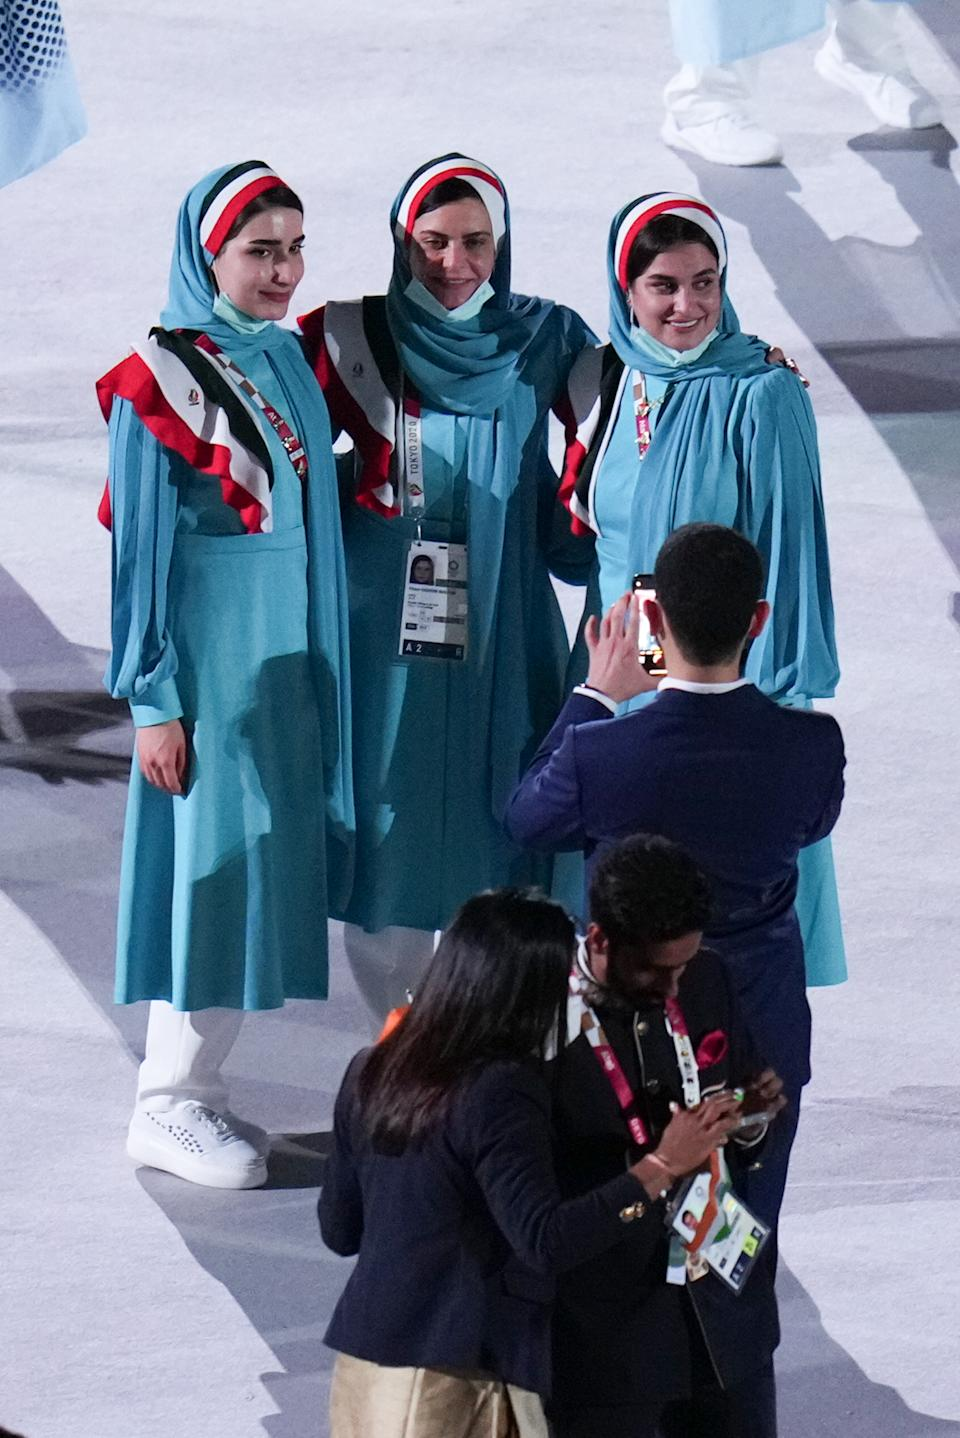 TOKYO, JAPAN - JULY 23: Athletes of Team Iran take part in the Parade of Nations during the Opening Ceremony of the Tokyo 2020 Olympic Games at Olympic Stadium on July 23, 2021 in Tokyo, Japan. (Photo by An Lingjun/CHINASPORTS/VCG via Getty Images)